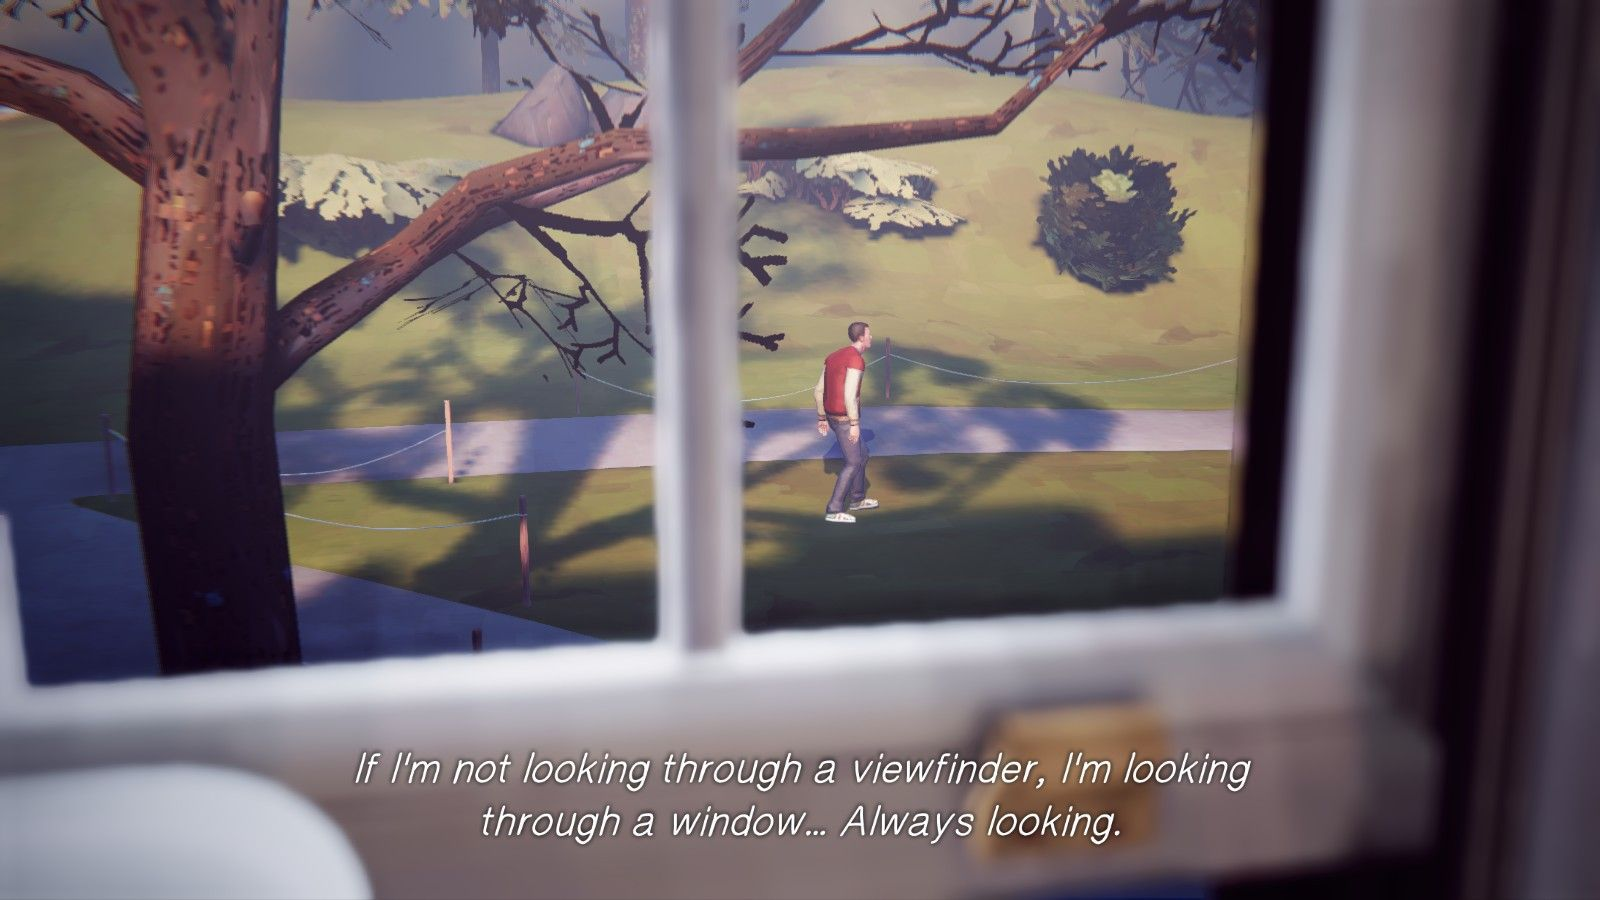 """A screencap of Max's view through a window, with the text: """"If I'm not looking through a viewfinder, I'm looking through a window... Always looking."""""""